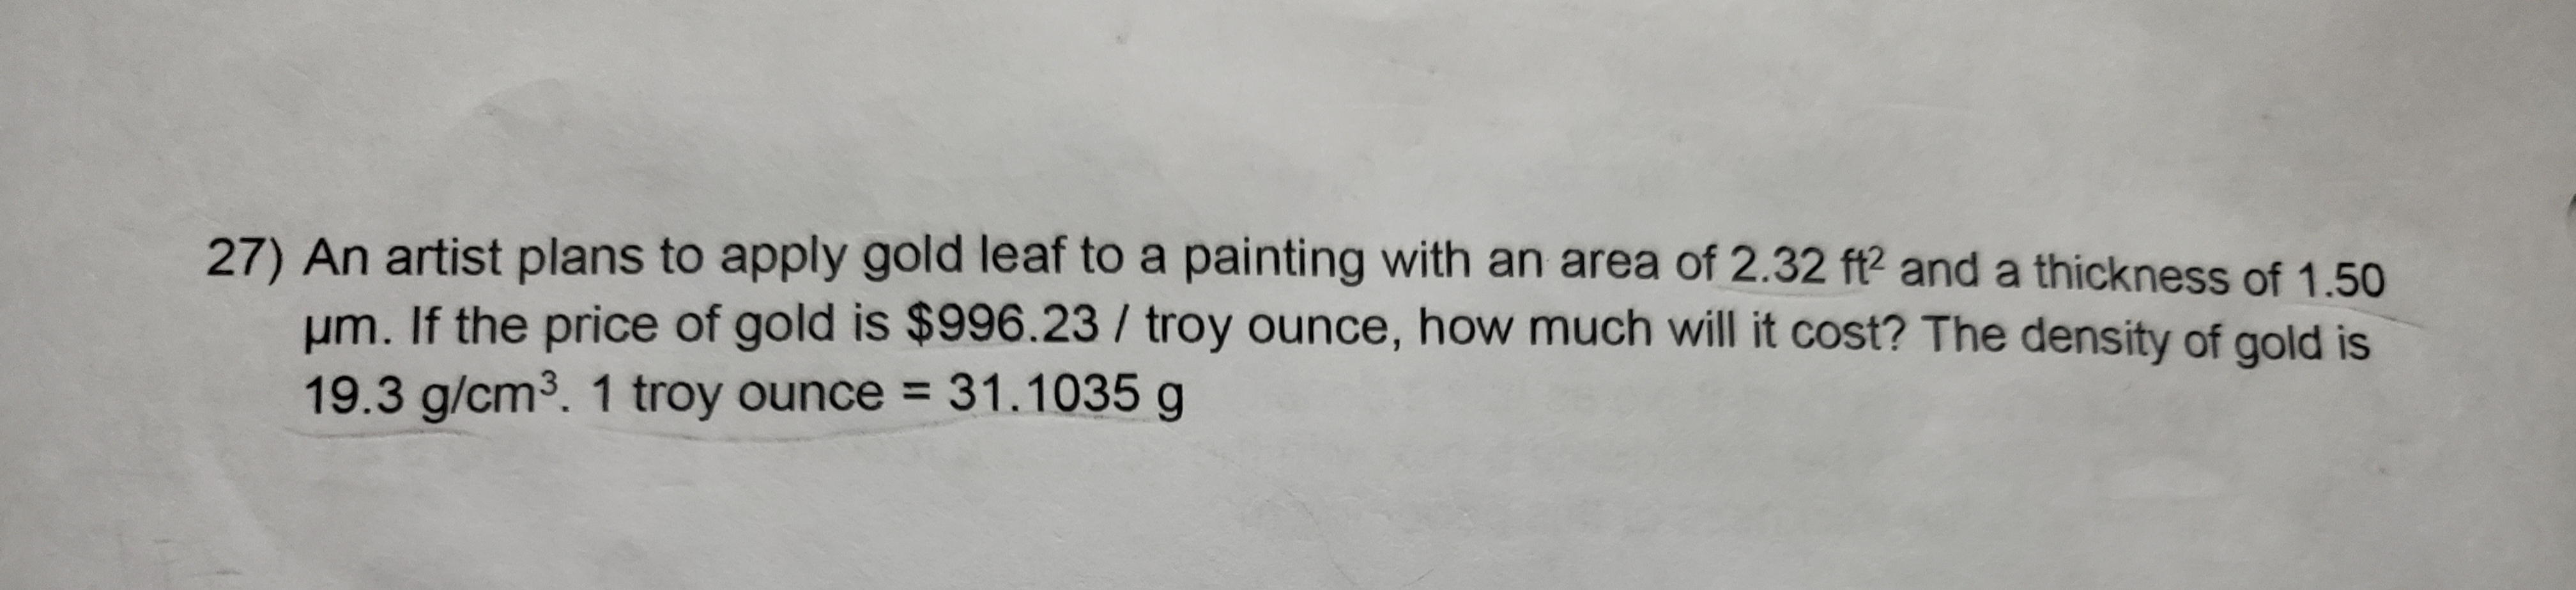 27) An artist plans to apply gold leaf to a painting with an area of 2.32 f? and a thickness of 1.50 Hm. If the price of gold is $996.23/ troy ounce, how much will it cost? The density of gold is 19.3 g/cm3. 1 troy ounce 31.1035 g